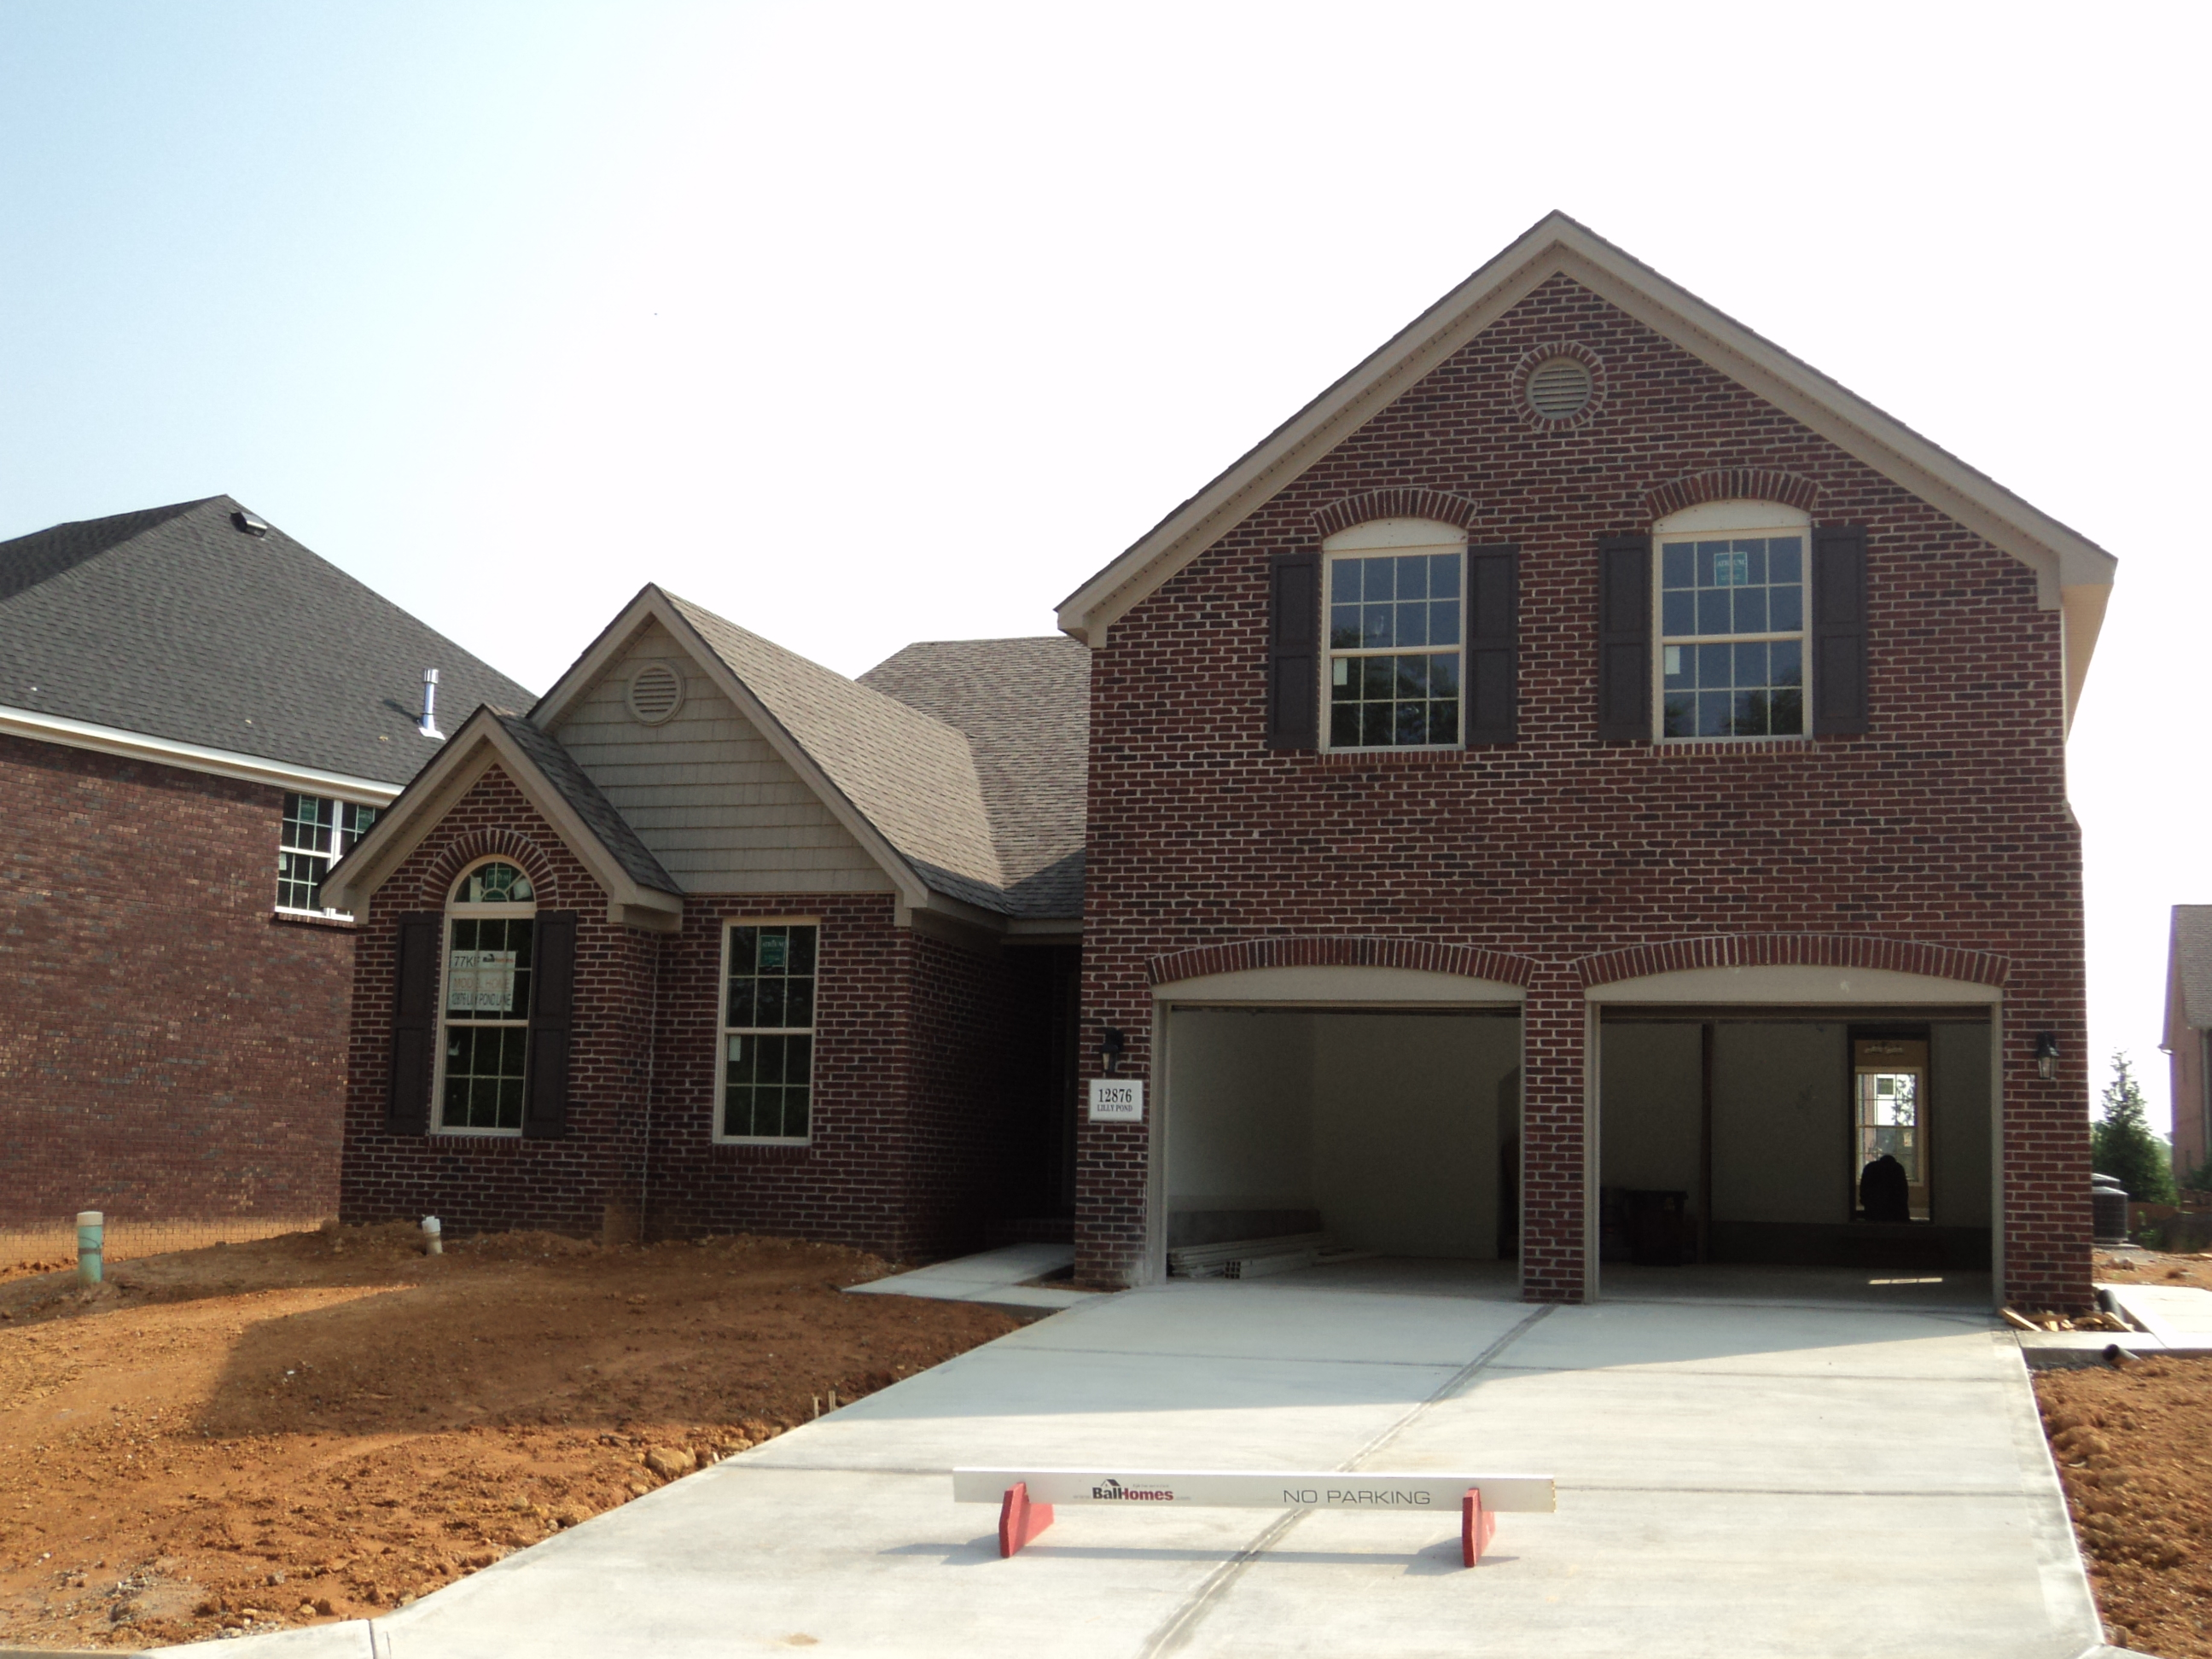 Ball homes knoxville tn home review for Home builders in knoxville tennessee